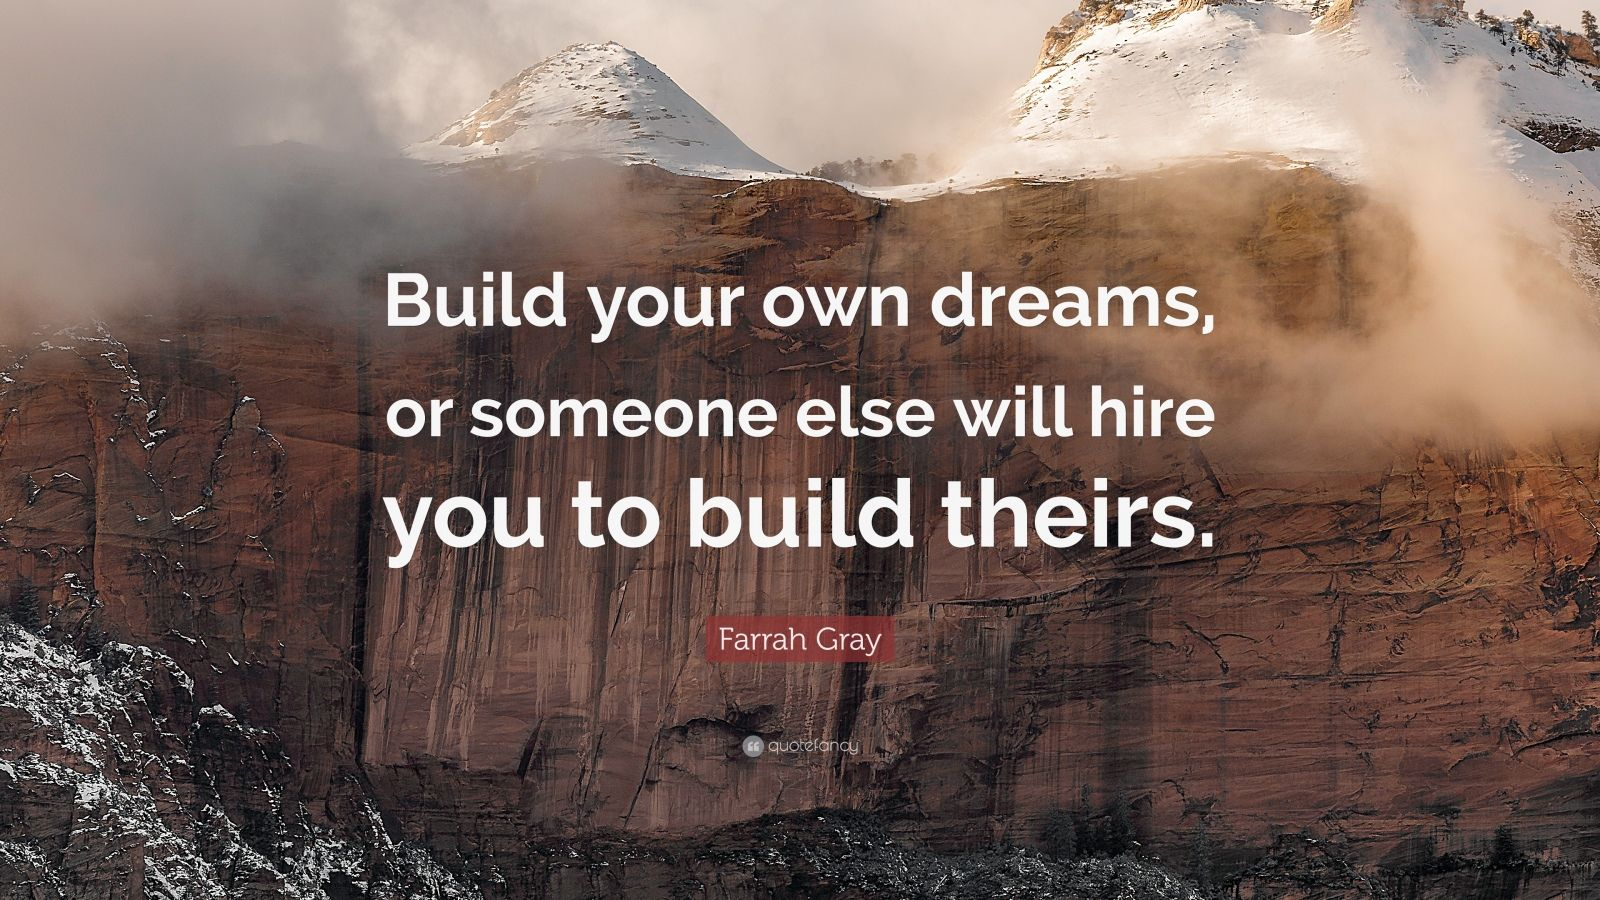 Success Quotes Hd Wallpapers 1080p Farrah Gray Quote Build Your Own Dreams Or Someone Else